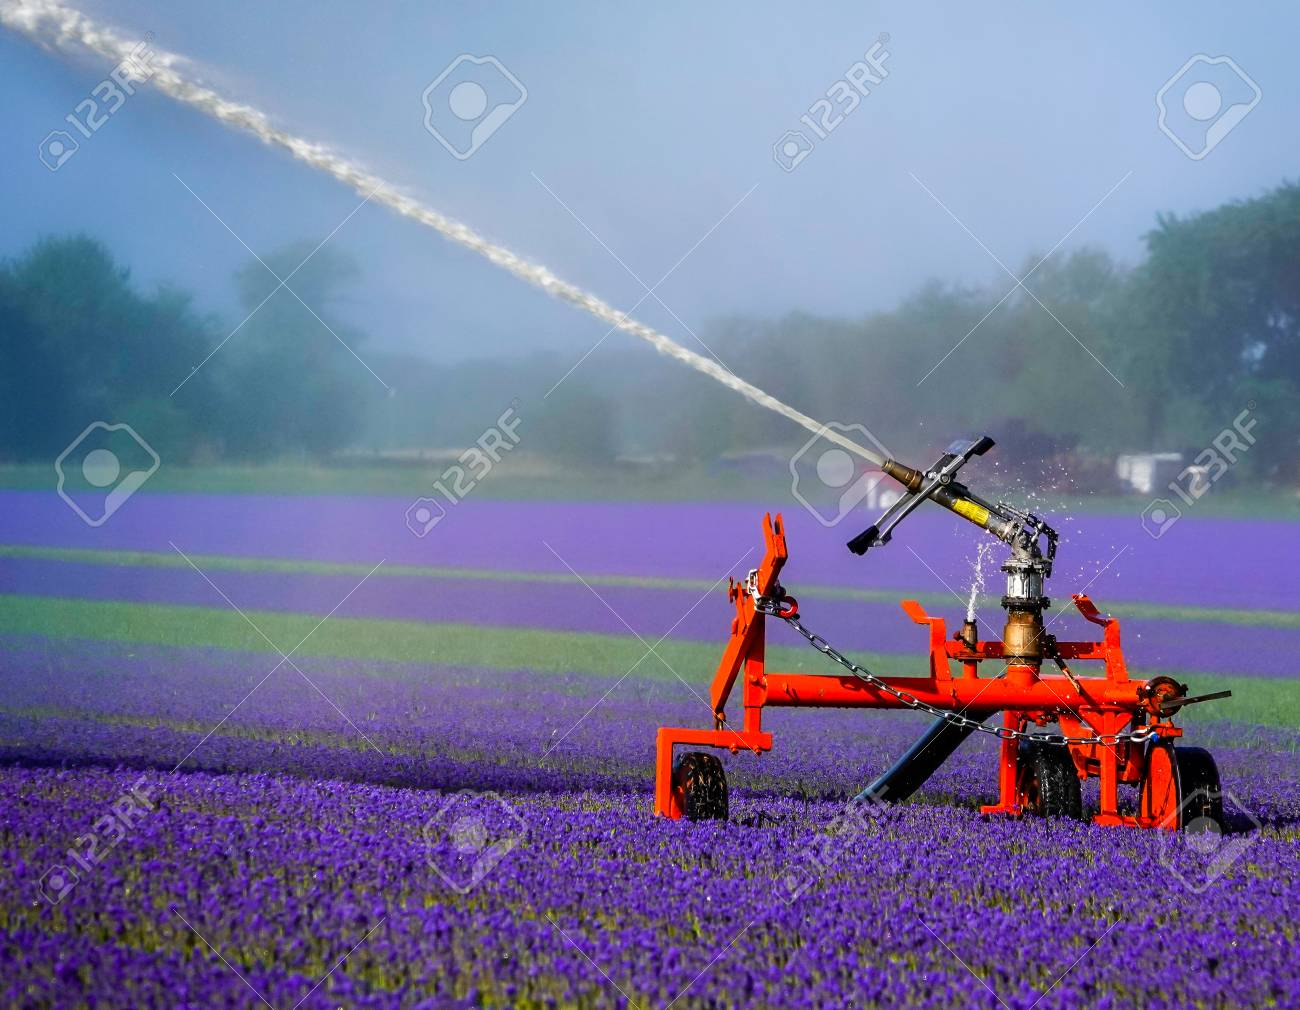 Watering A Field Of Purple Flowers Stock Photo Picture And Royalty